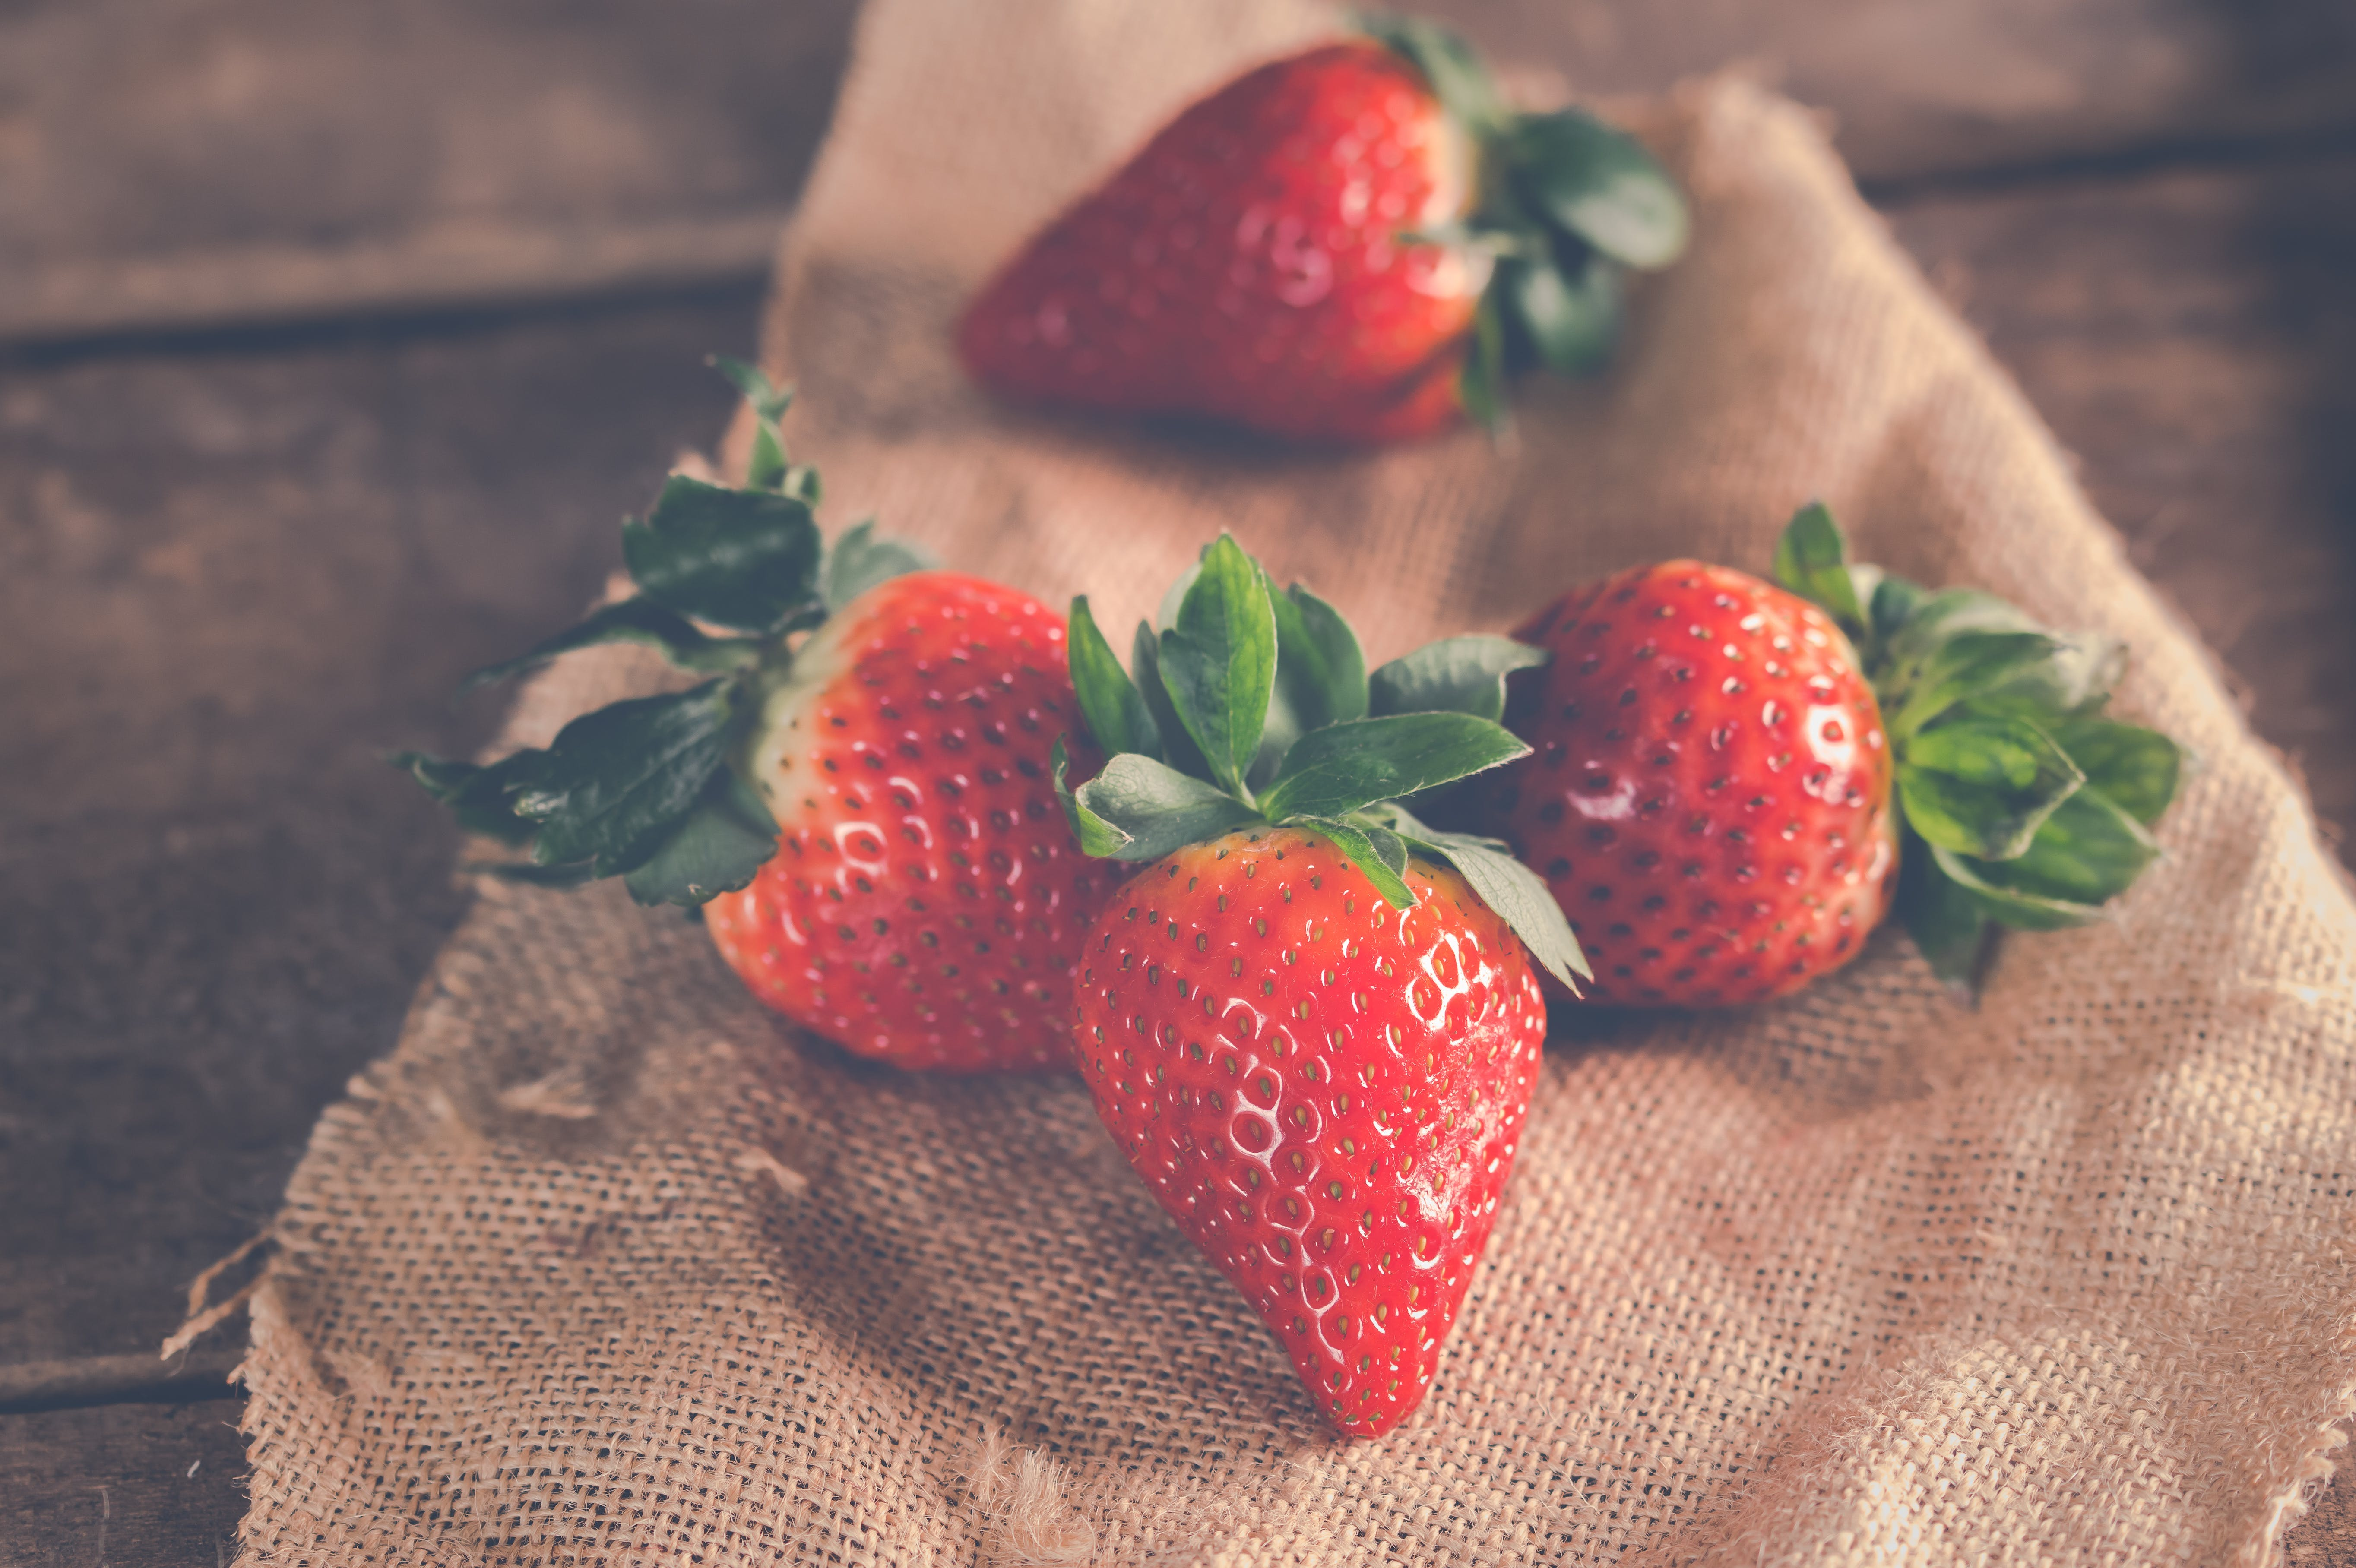 Close-up Photography of Strawberries